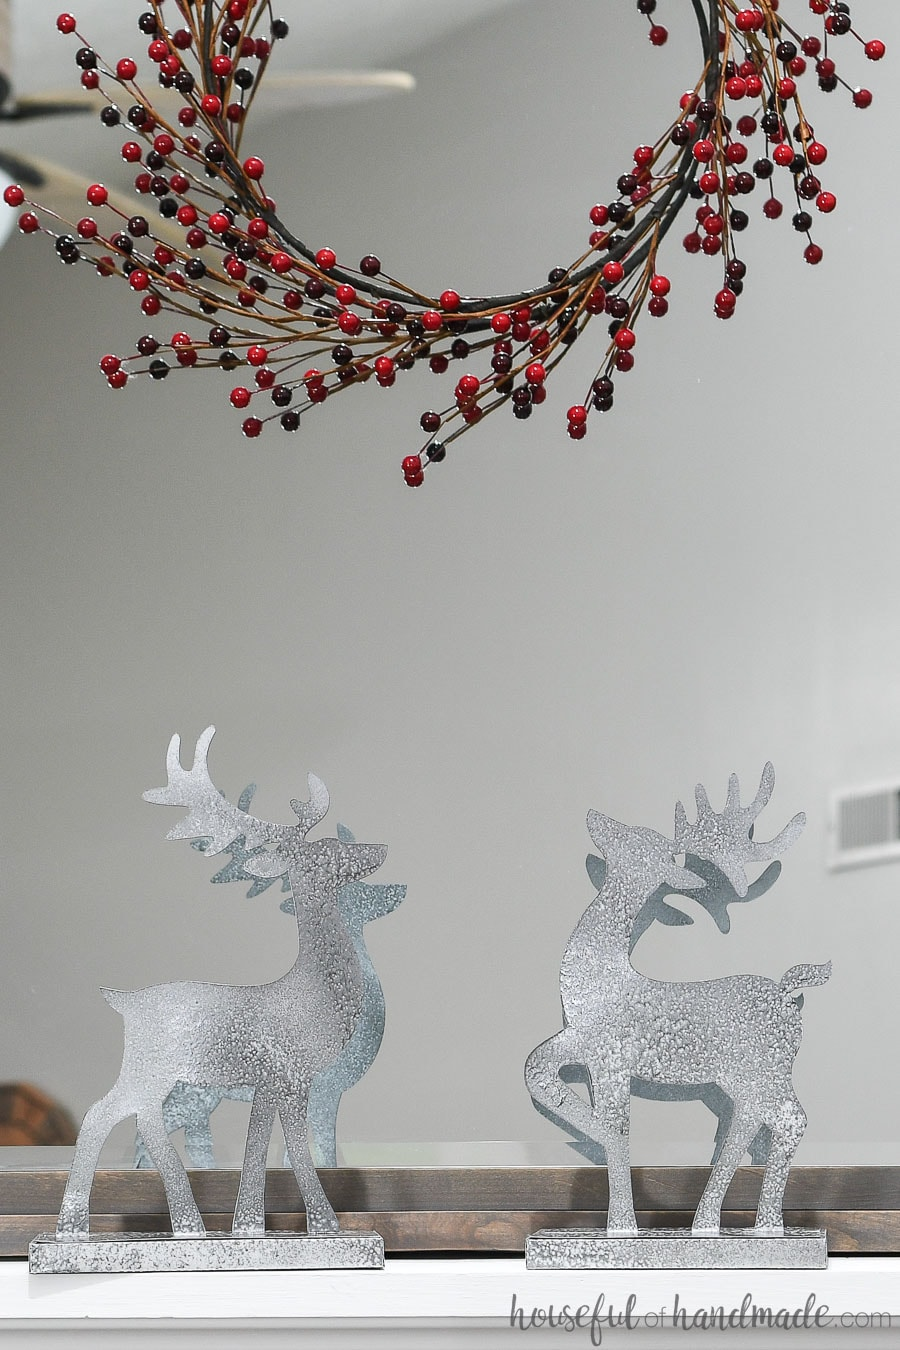 Christmas reindeer figurines made from paper and painted to look like metal.